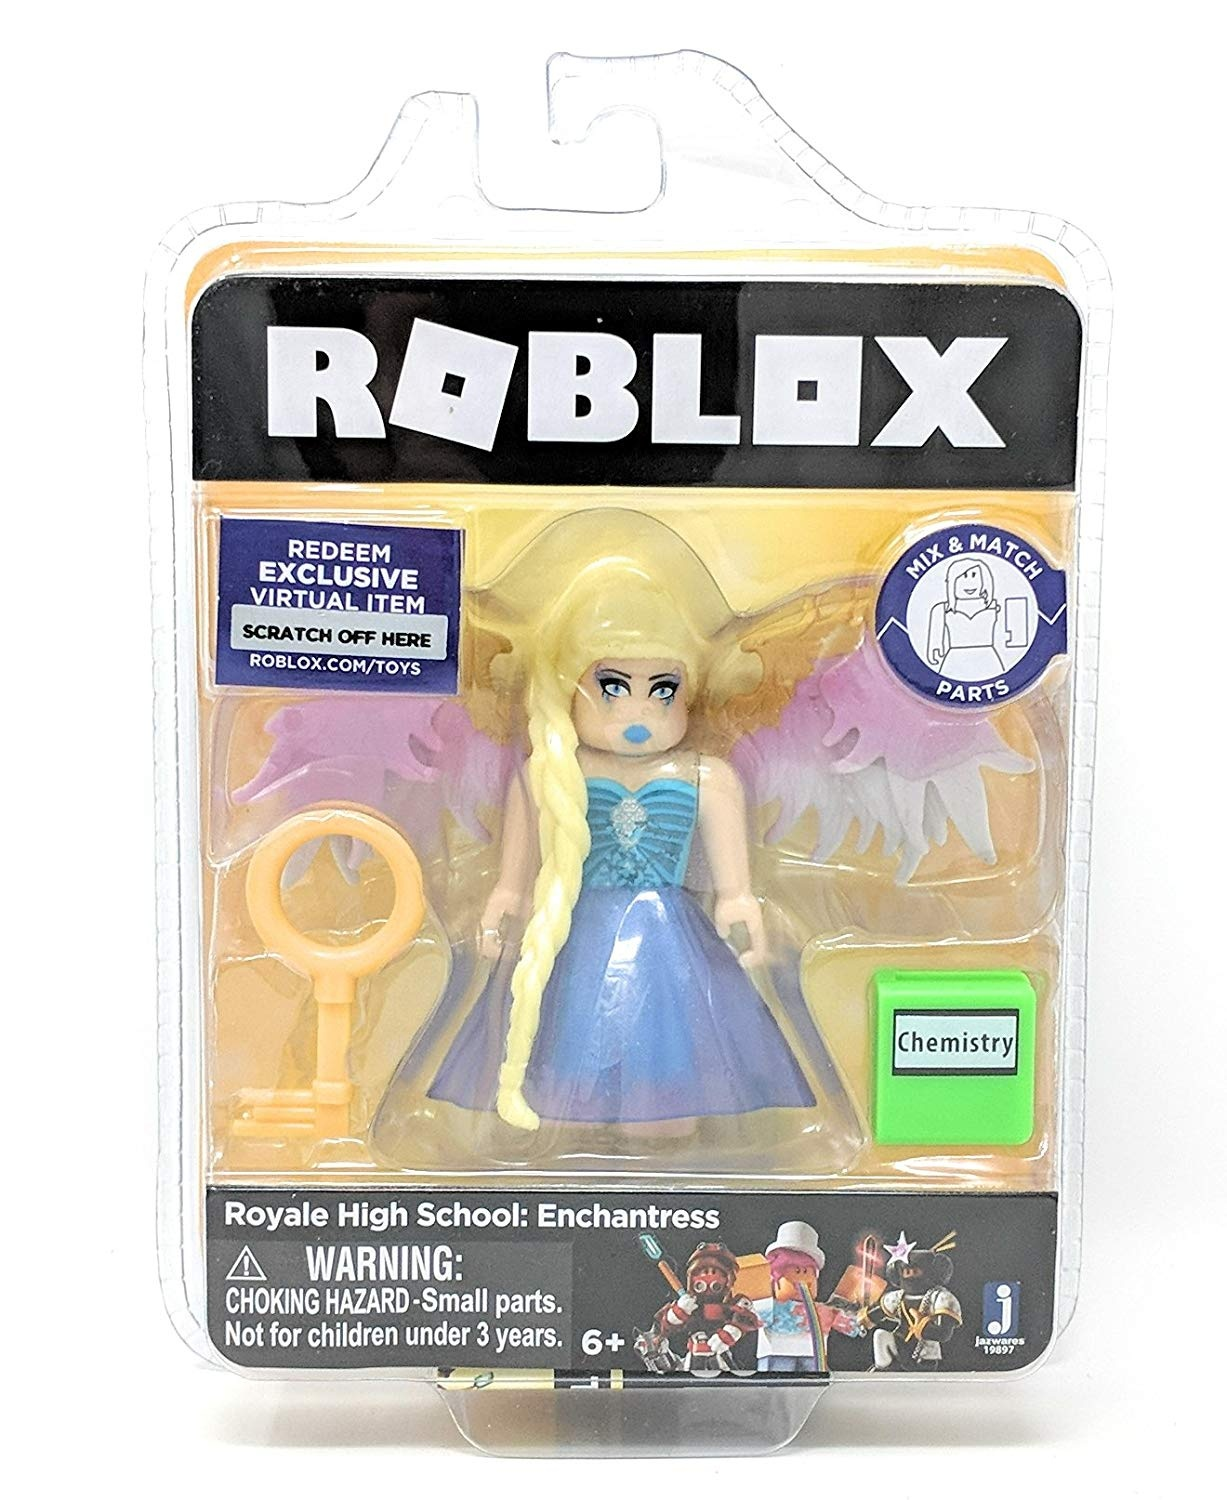 Roblox Gold Collection Royale High School: Enchantress Single Figure Pack  with Exclusive Virtual Item Code